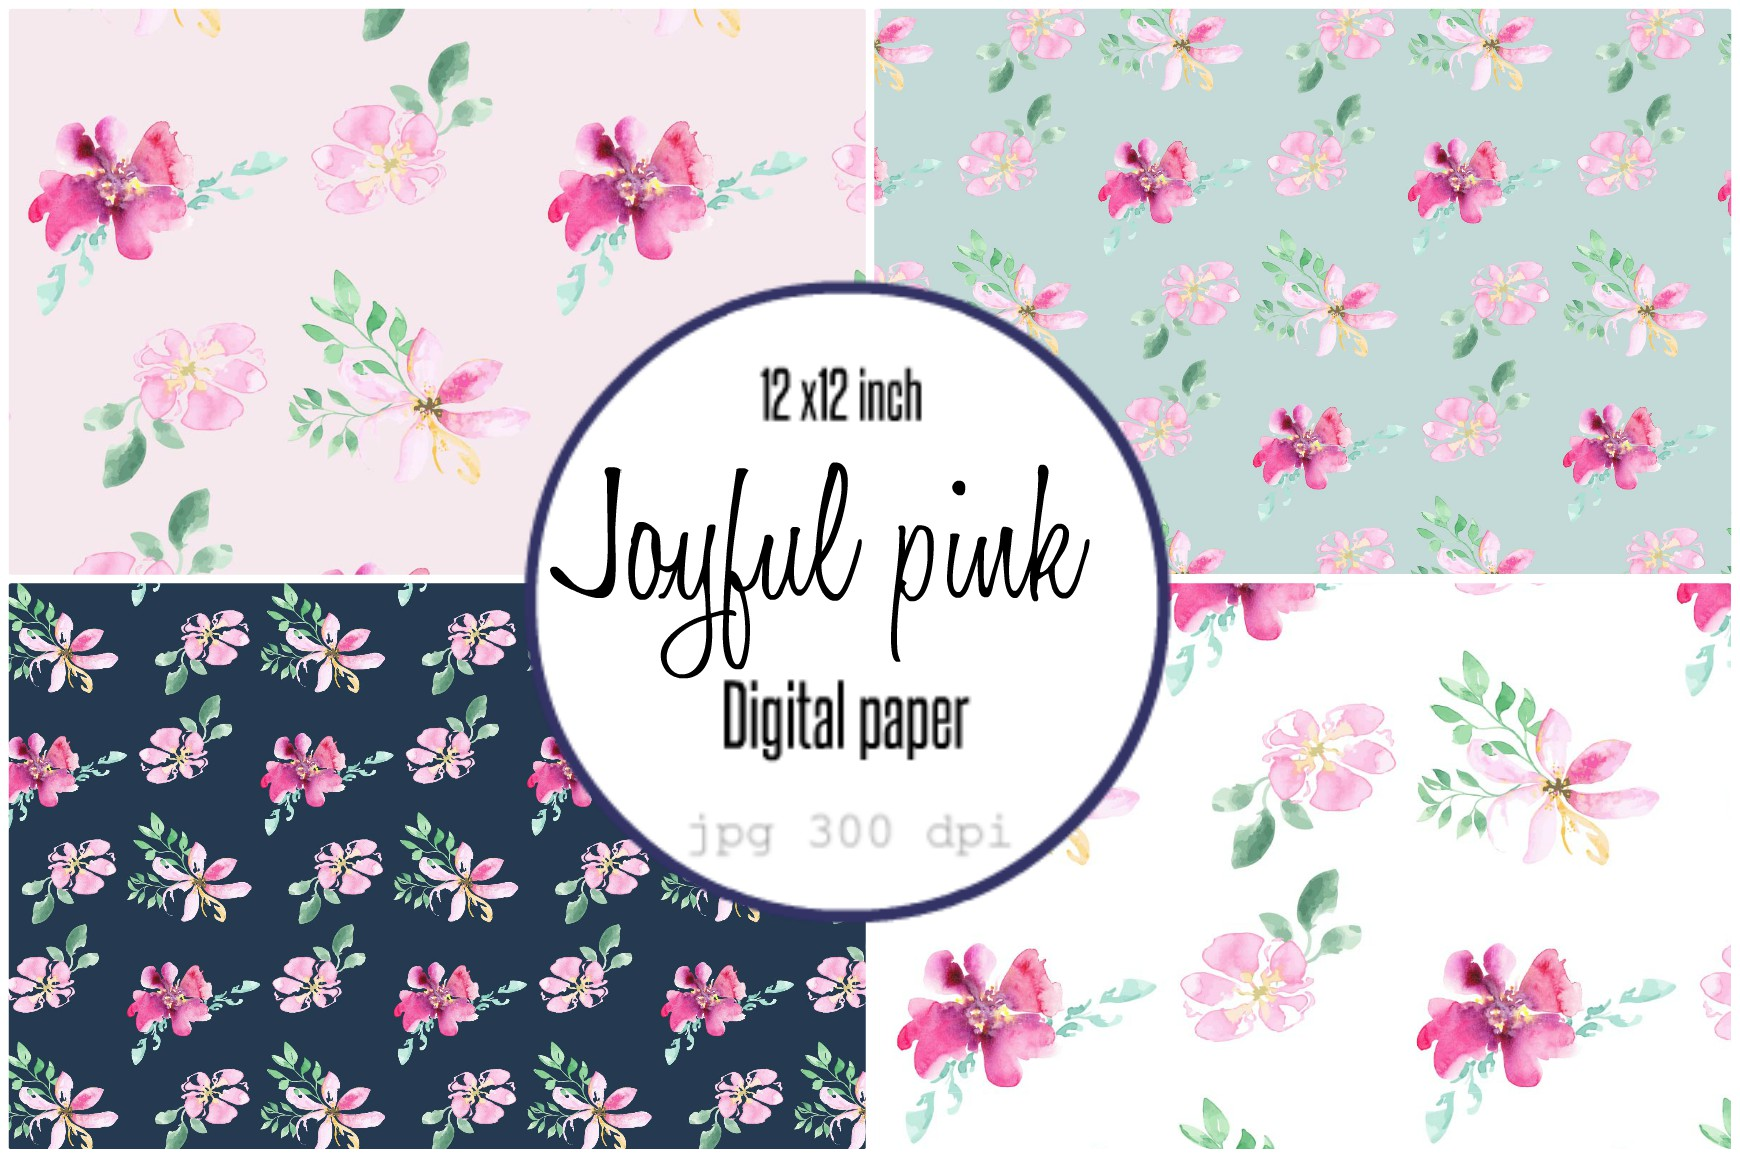 Download Free Digital Paper Loose Watercolor Flowers Graphic By Anines Atelier for Cricut Explore, Silhouette and other cutting machines.